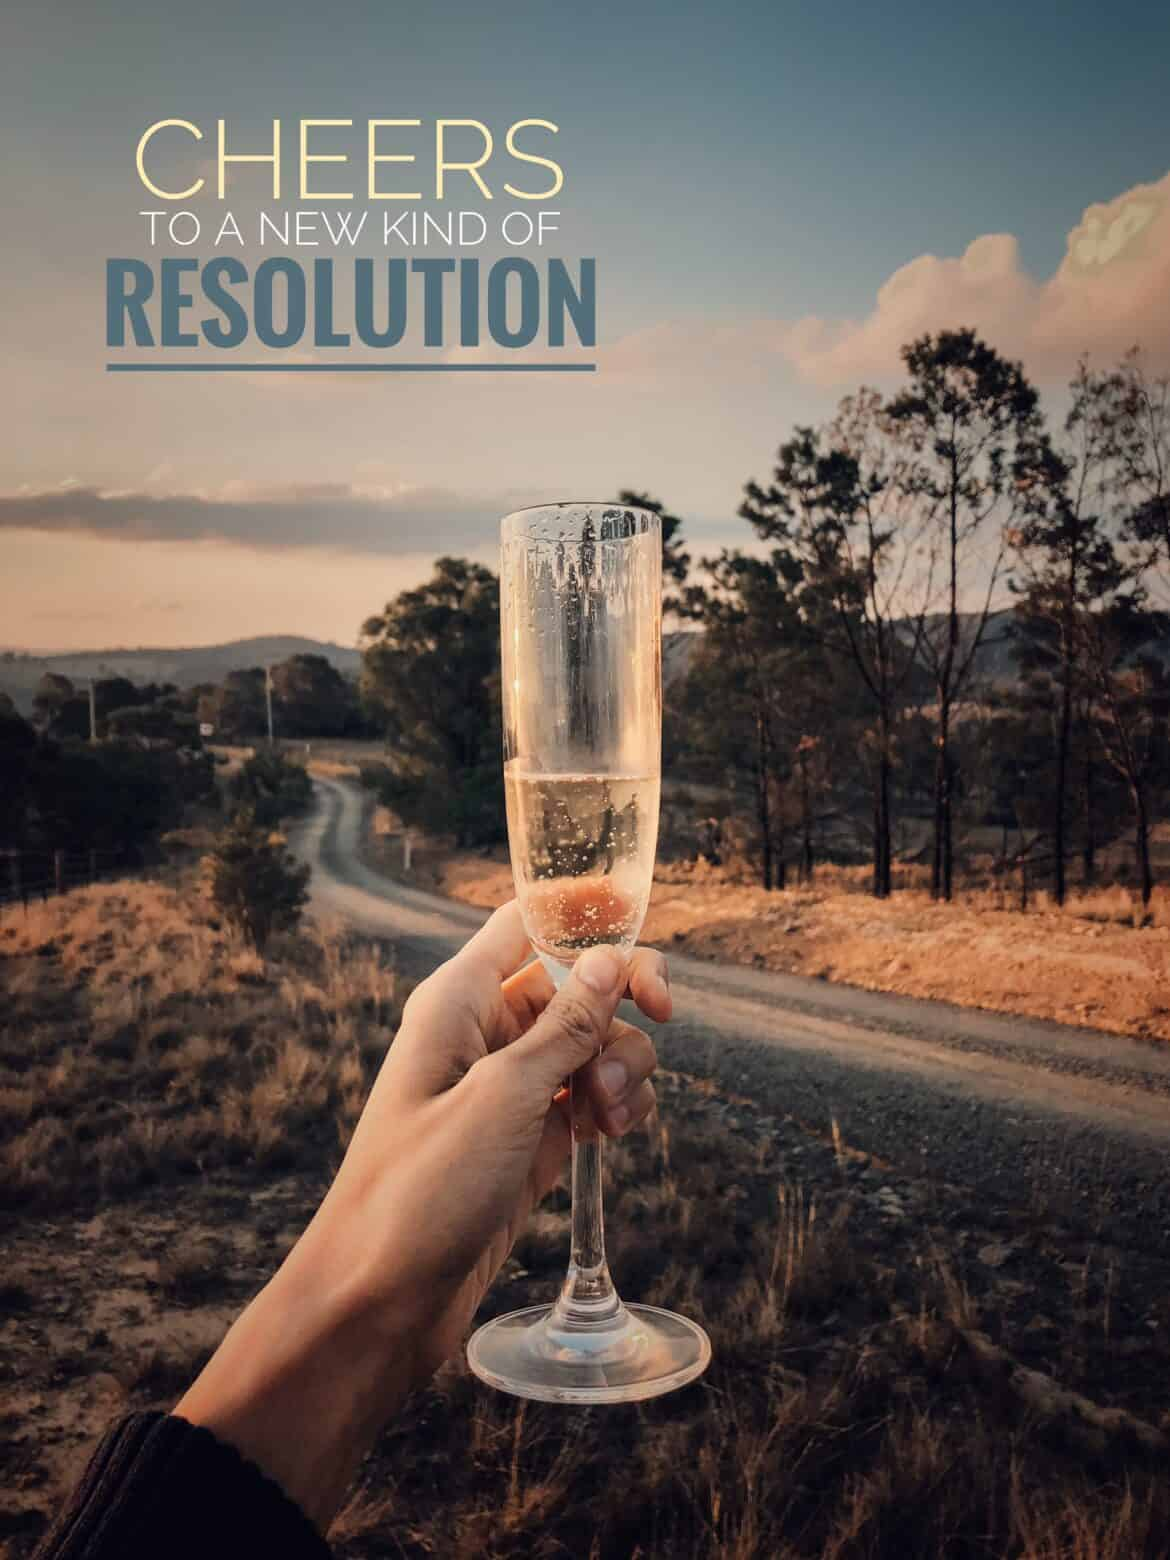 New kind of resolution for 2021